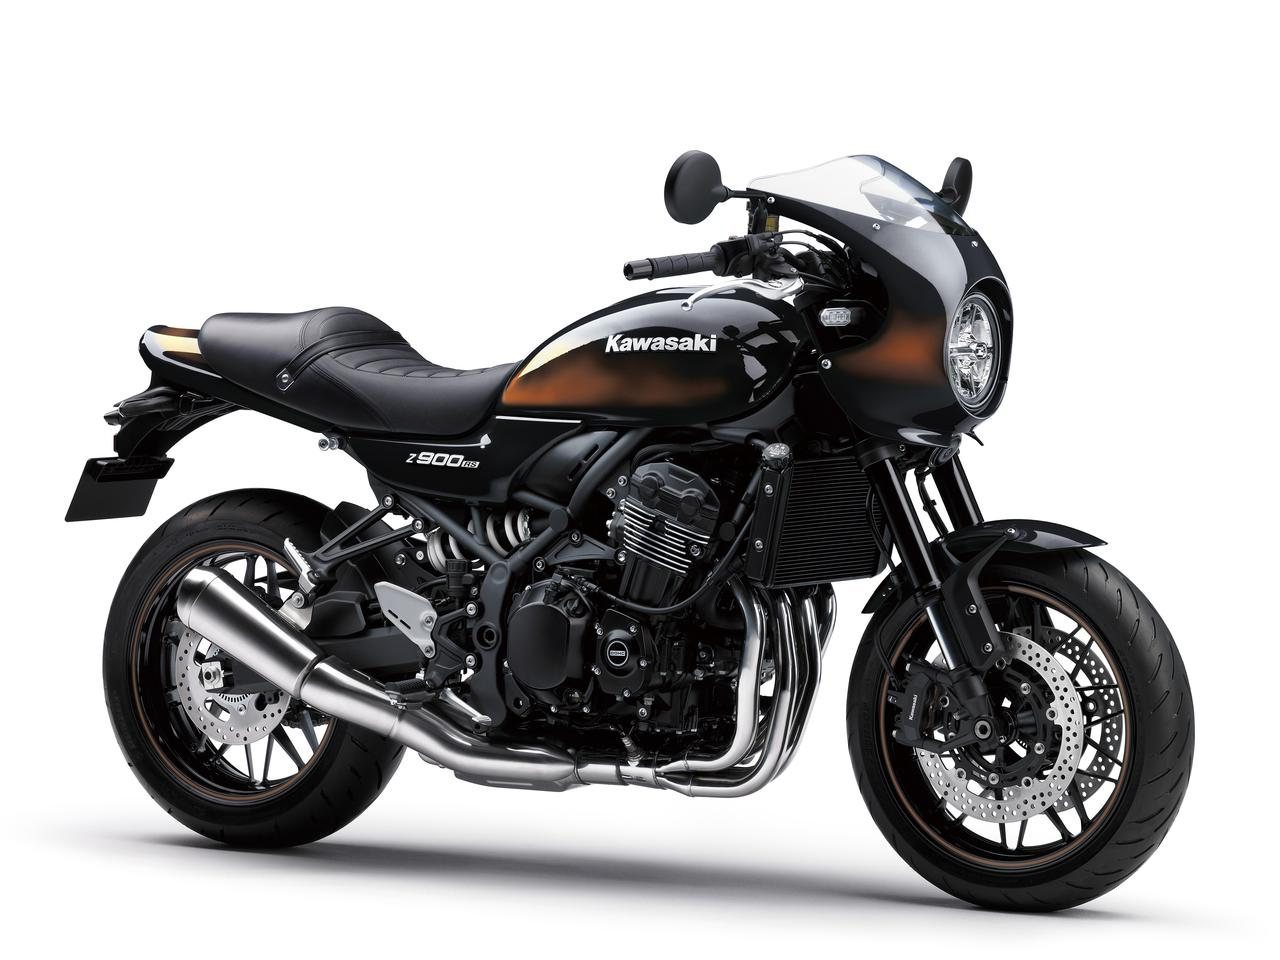 Images : 8番目の画像 - カワサキ「Z900RS」「Z900RS CAFE」2021年モデル - webオートバイ